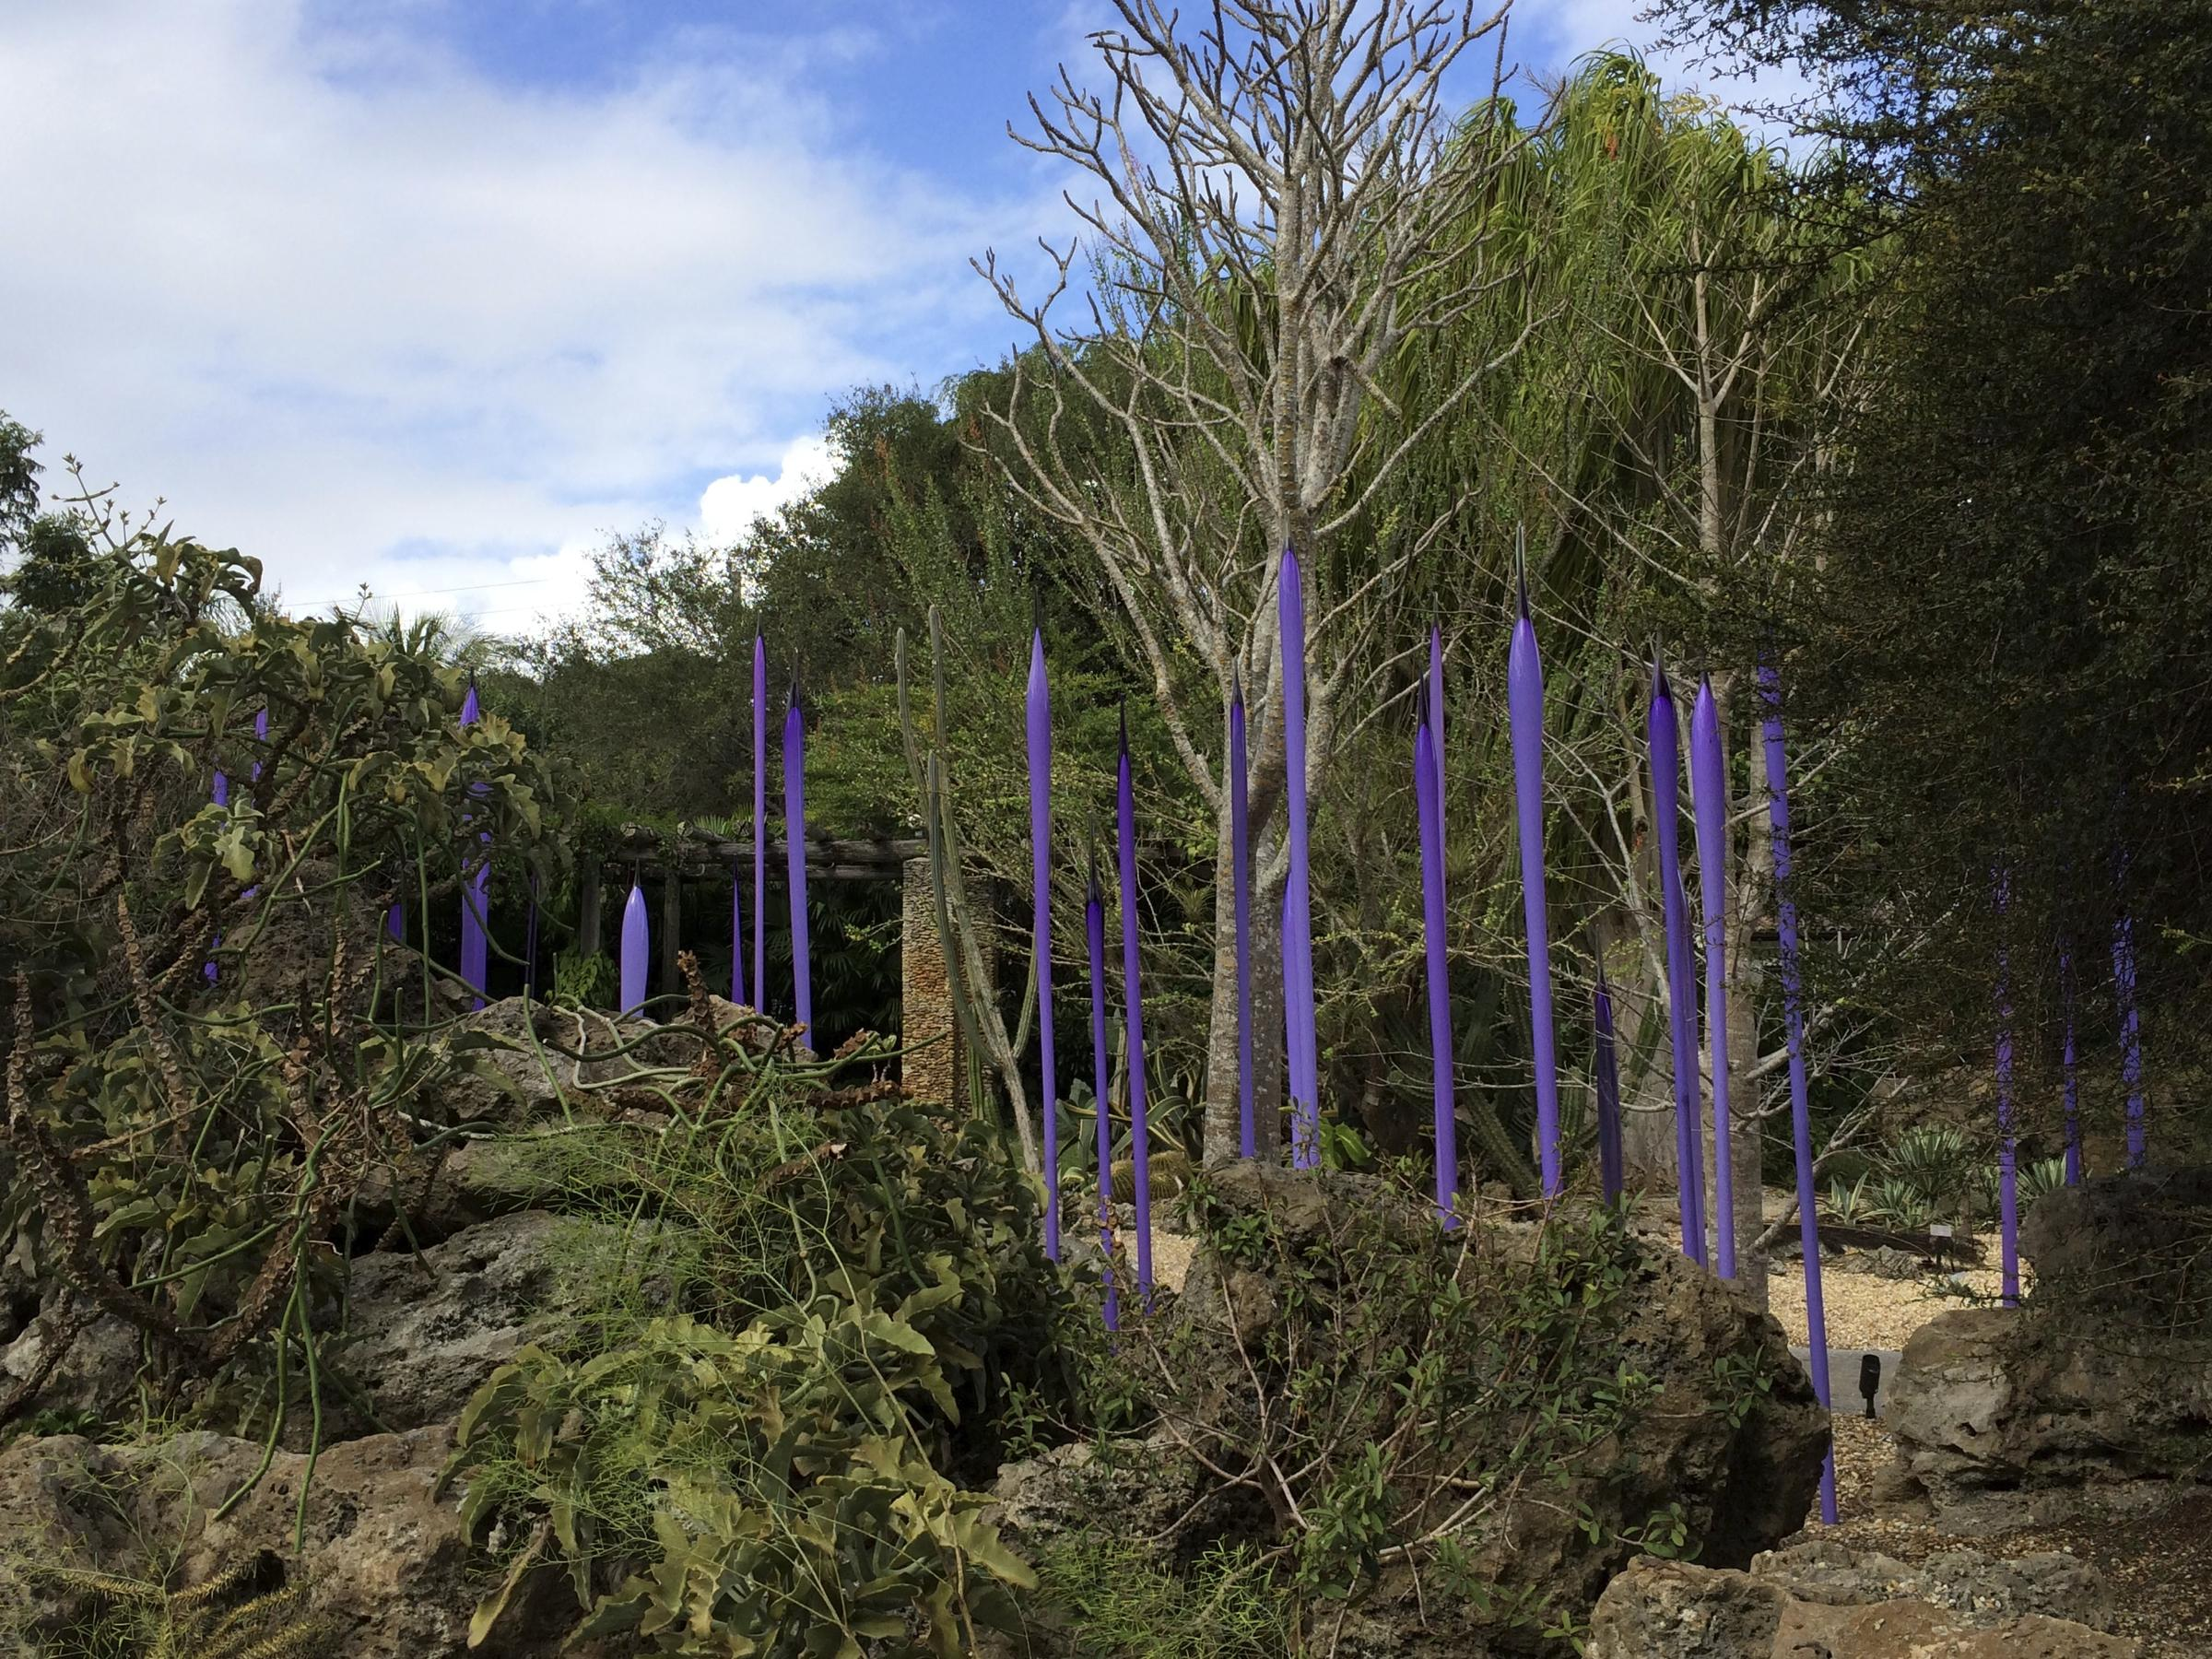 Fairchild Hopes Chihuly\'s Colorful Glass Works Will Bring Crowds   WLRN